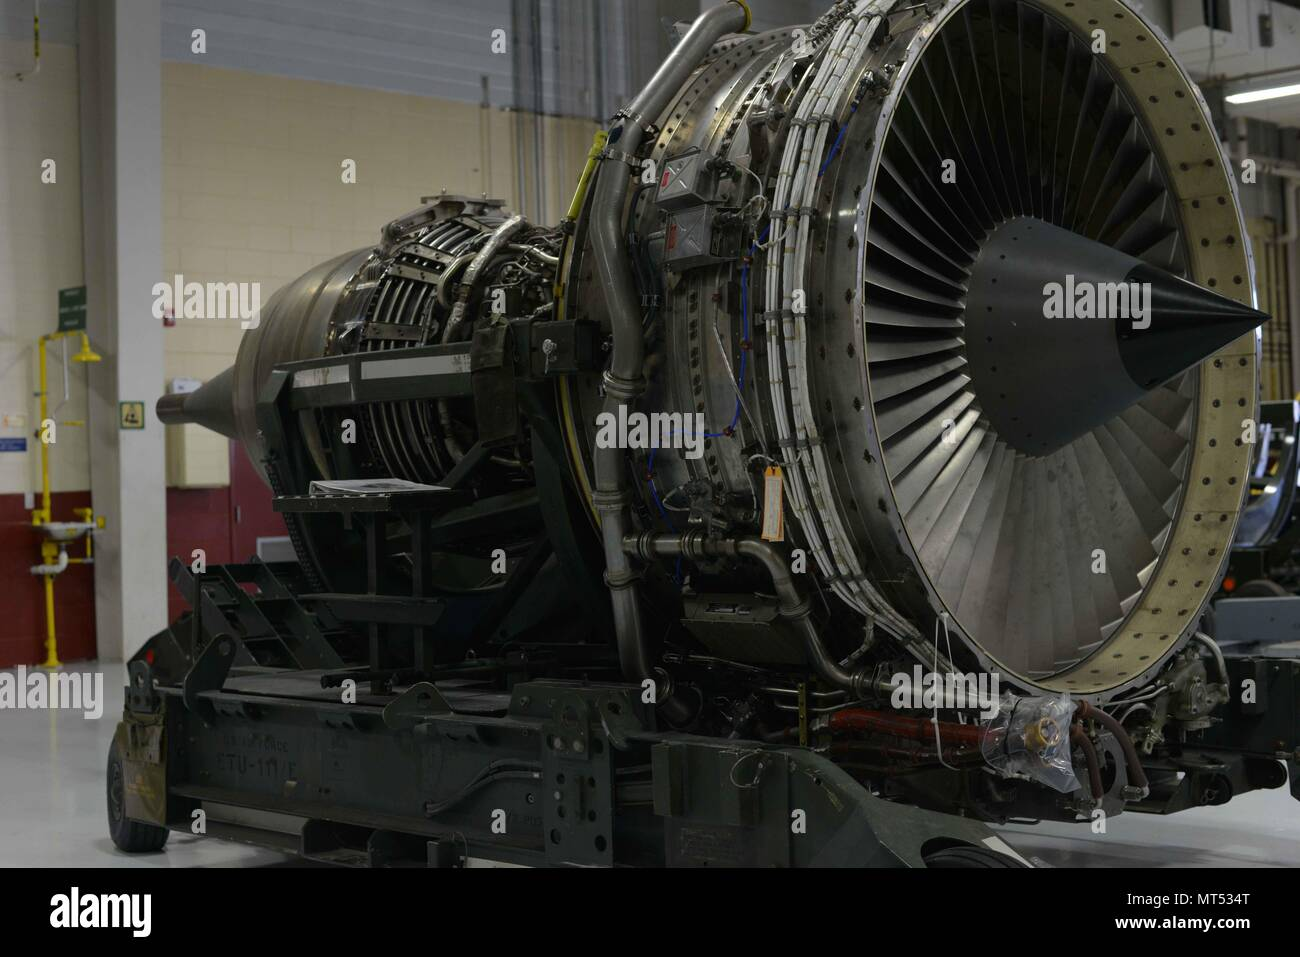 Axial Flow Stock Photos Images Alamy Jet Engine Diagram Of An Axialflow A United States Air Force Spare F108 Cf 100 For Kc